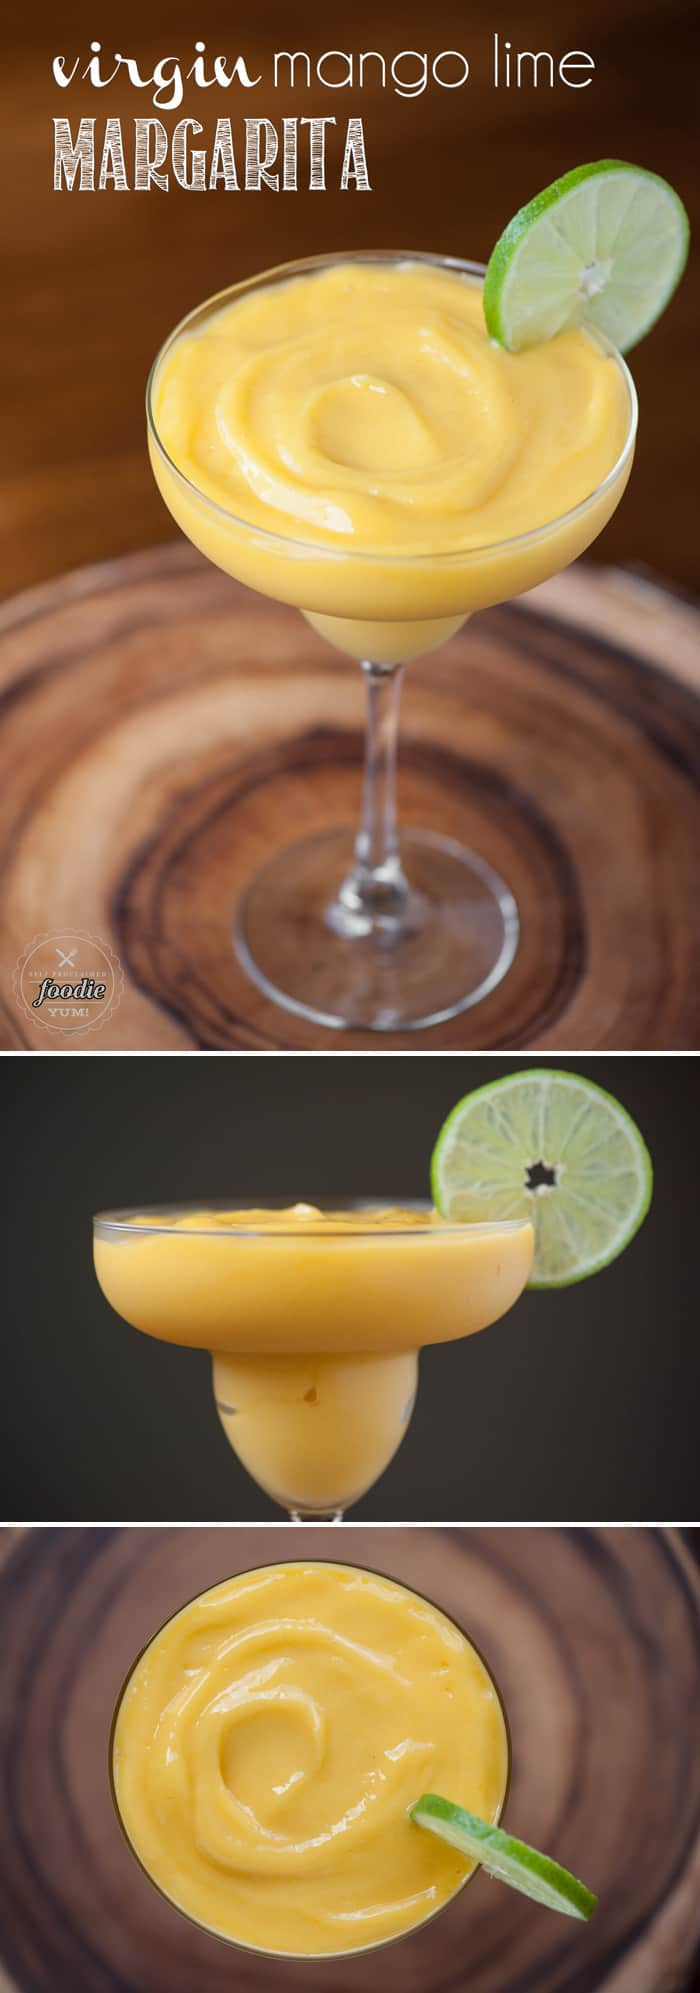 This non-alcoholic kid friendly Virgin Mango Lime Margarita takes only minutes to make and is full of tangy sweet fruit that blends up perfectly smooth.